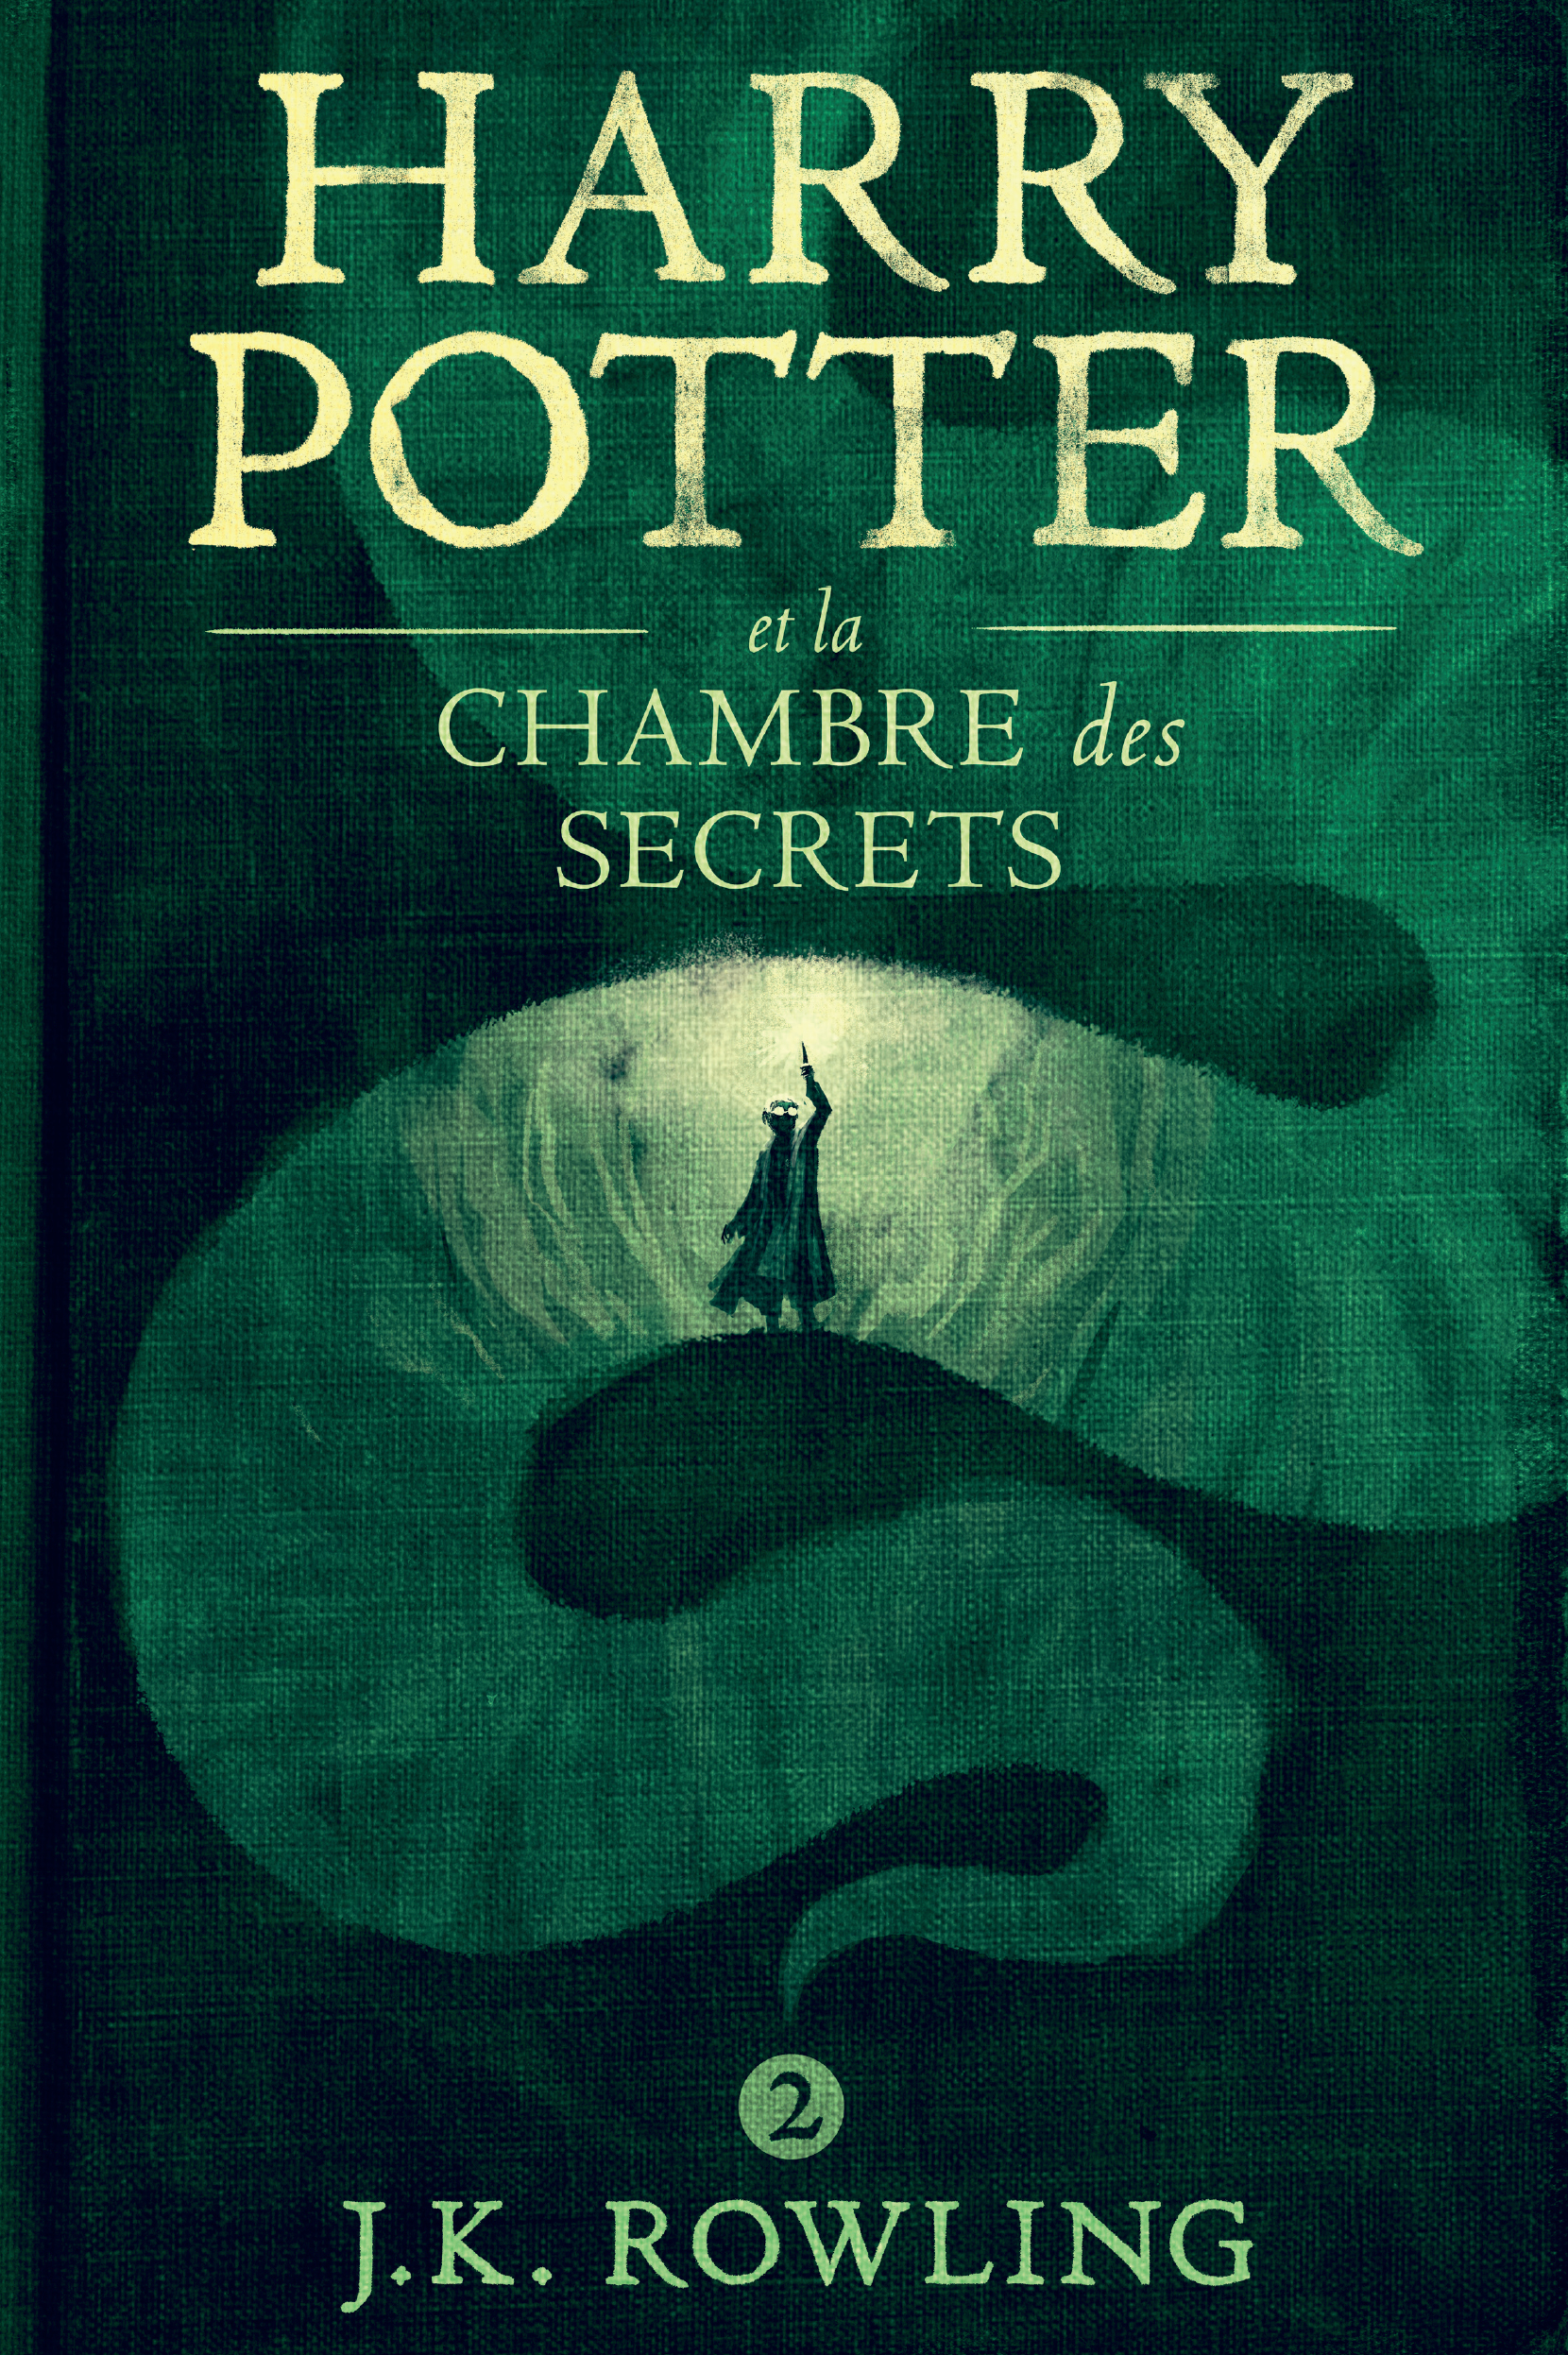 Harry potter et la chambre des secrets by j k rowling and - Harry potter et la chambre des secrets pc ...